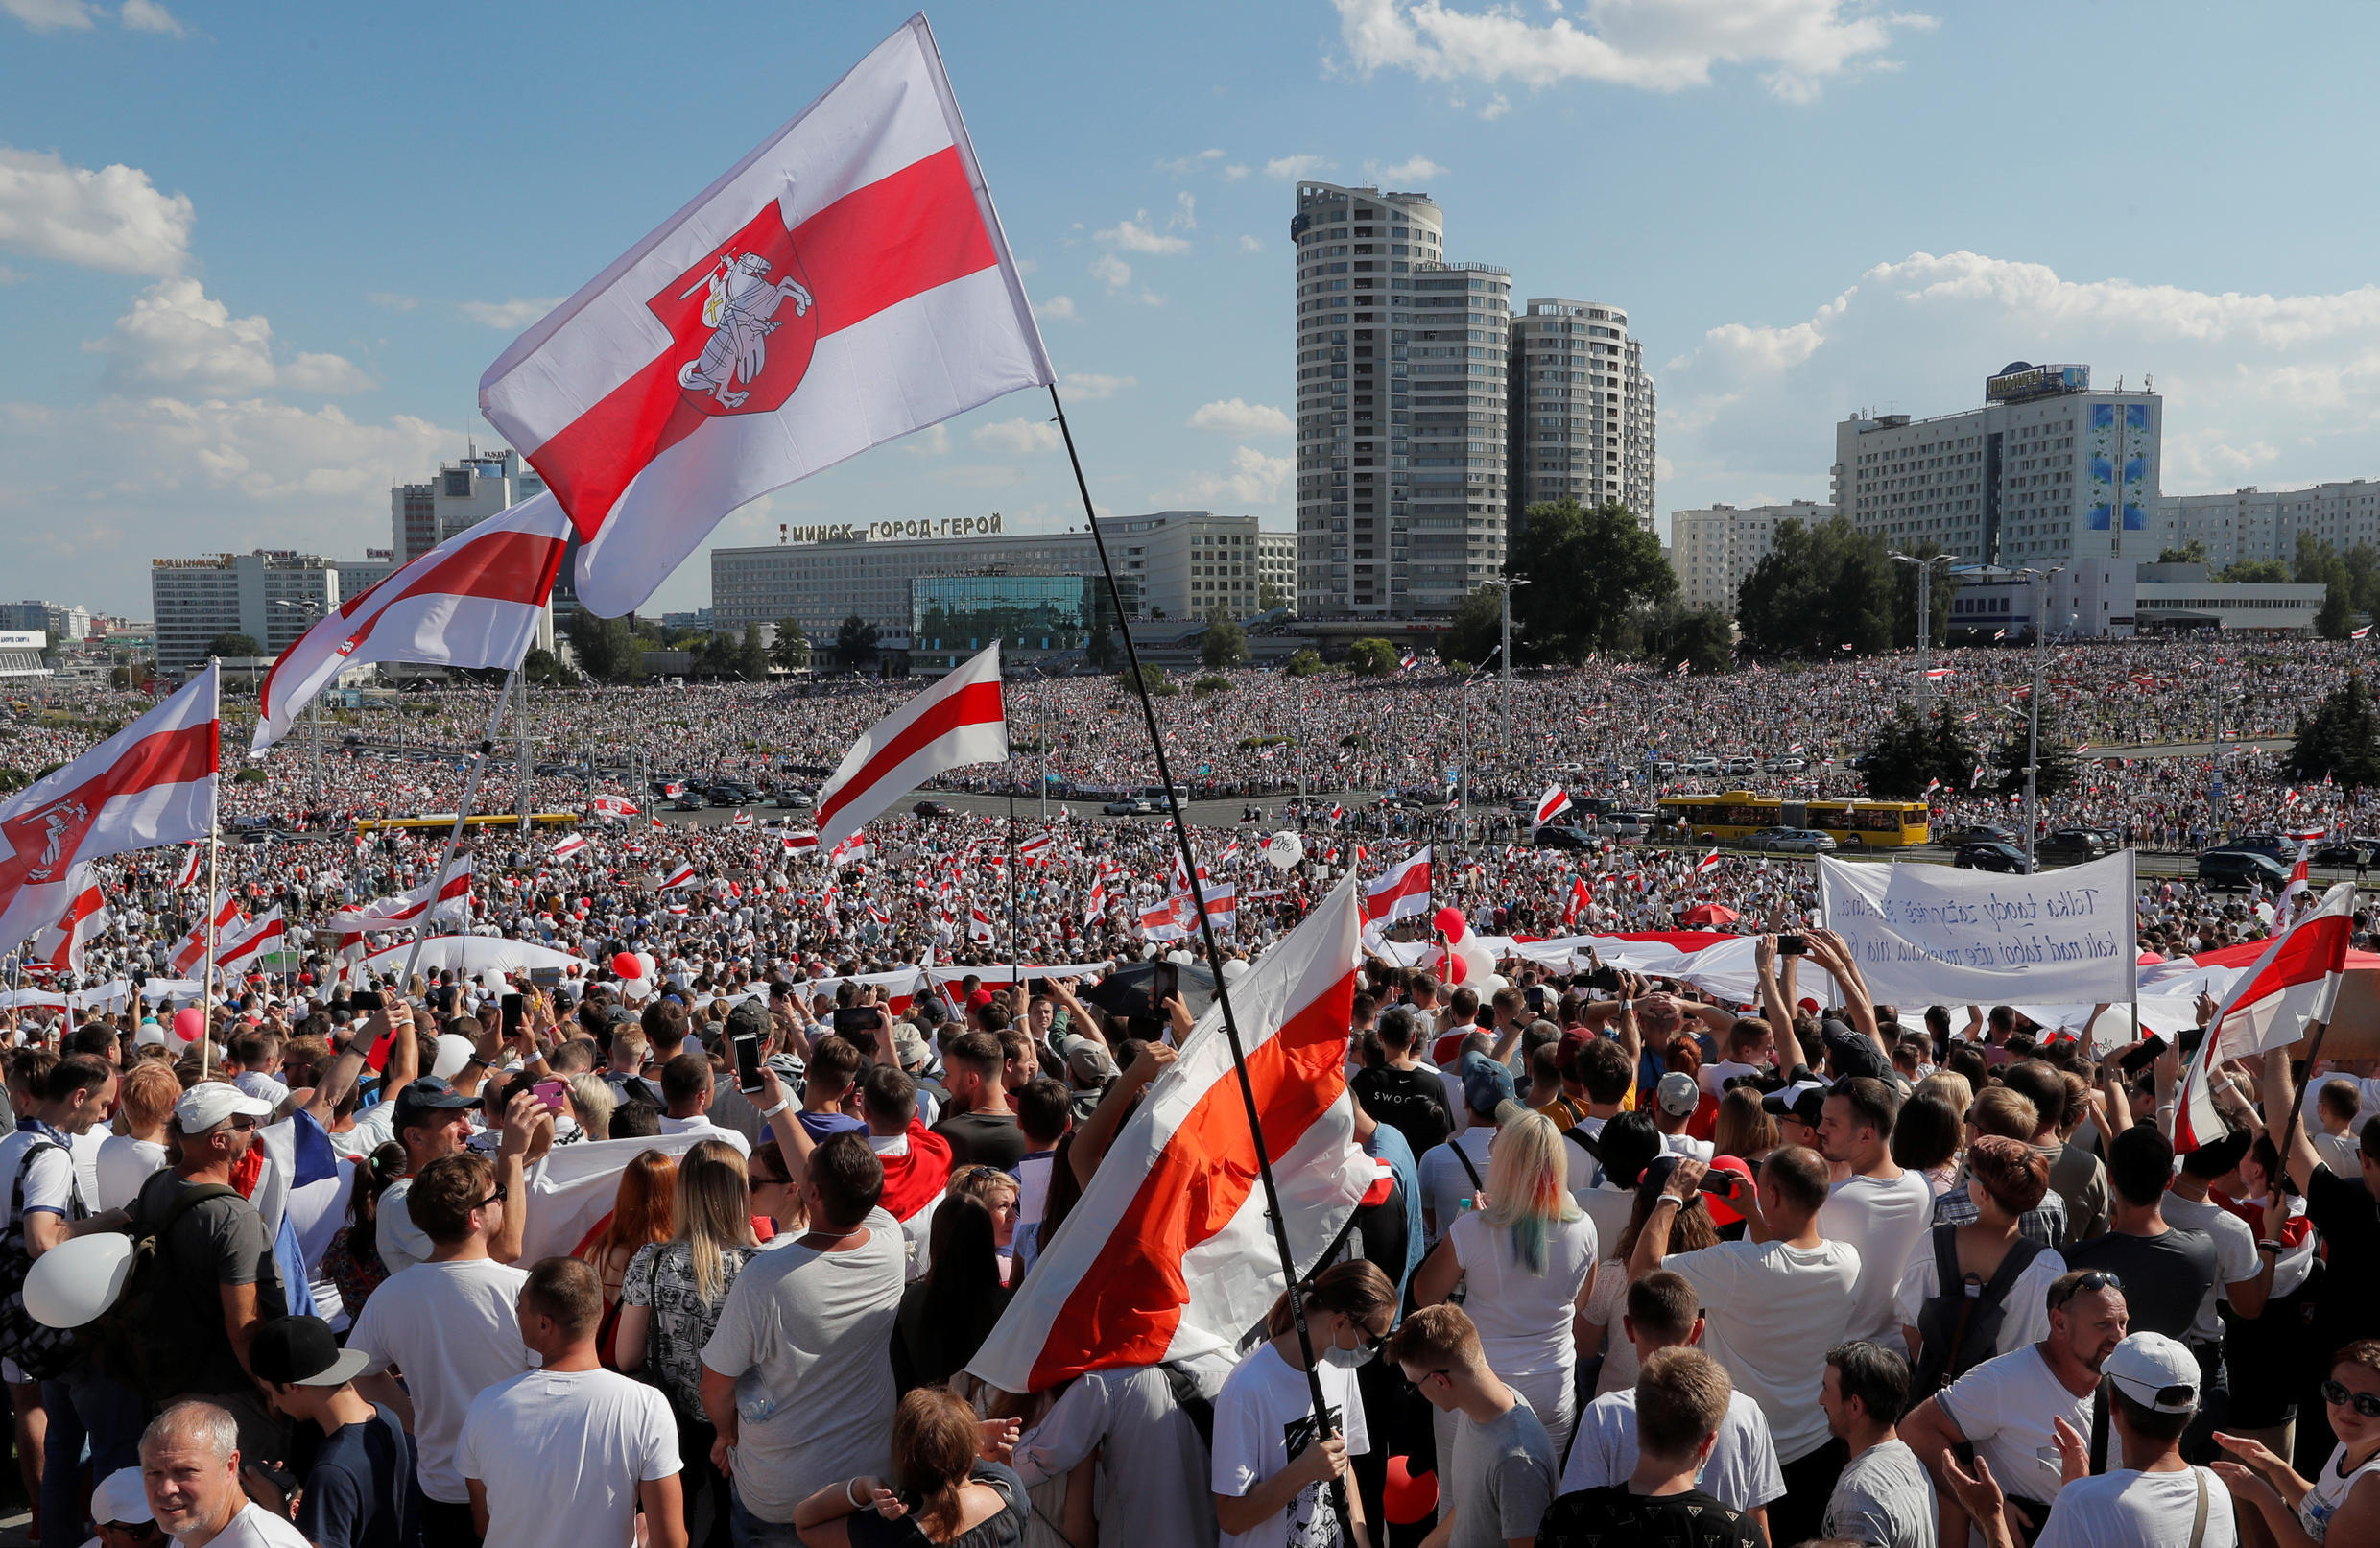 2020-08-16T145329Z_122075832_RC22FI98VPO6_RTRMADP_3_BELARUS-ELECTION-PROTESTS